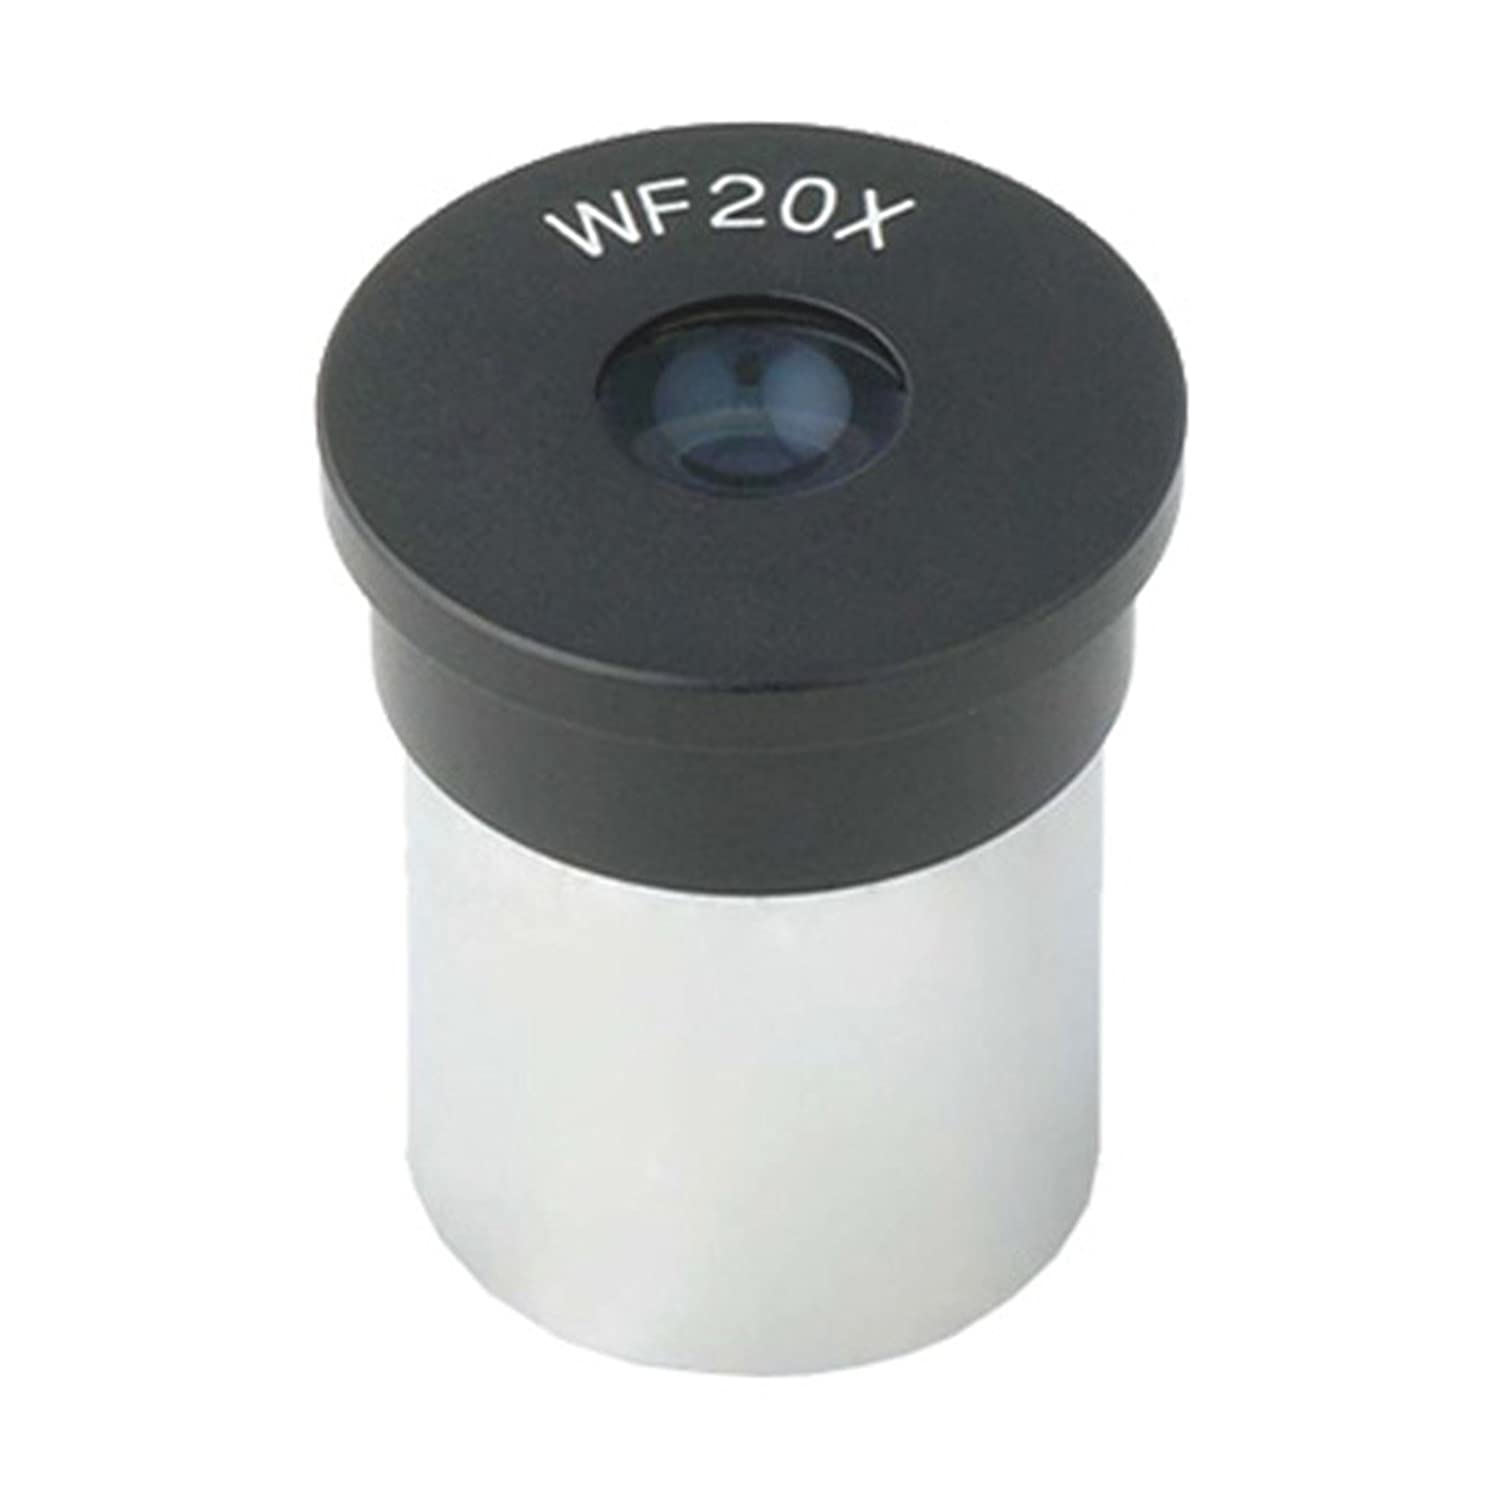 AmScope EP20X23-S One WF20X Microscope Eyepiece (23mm)